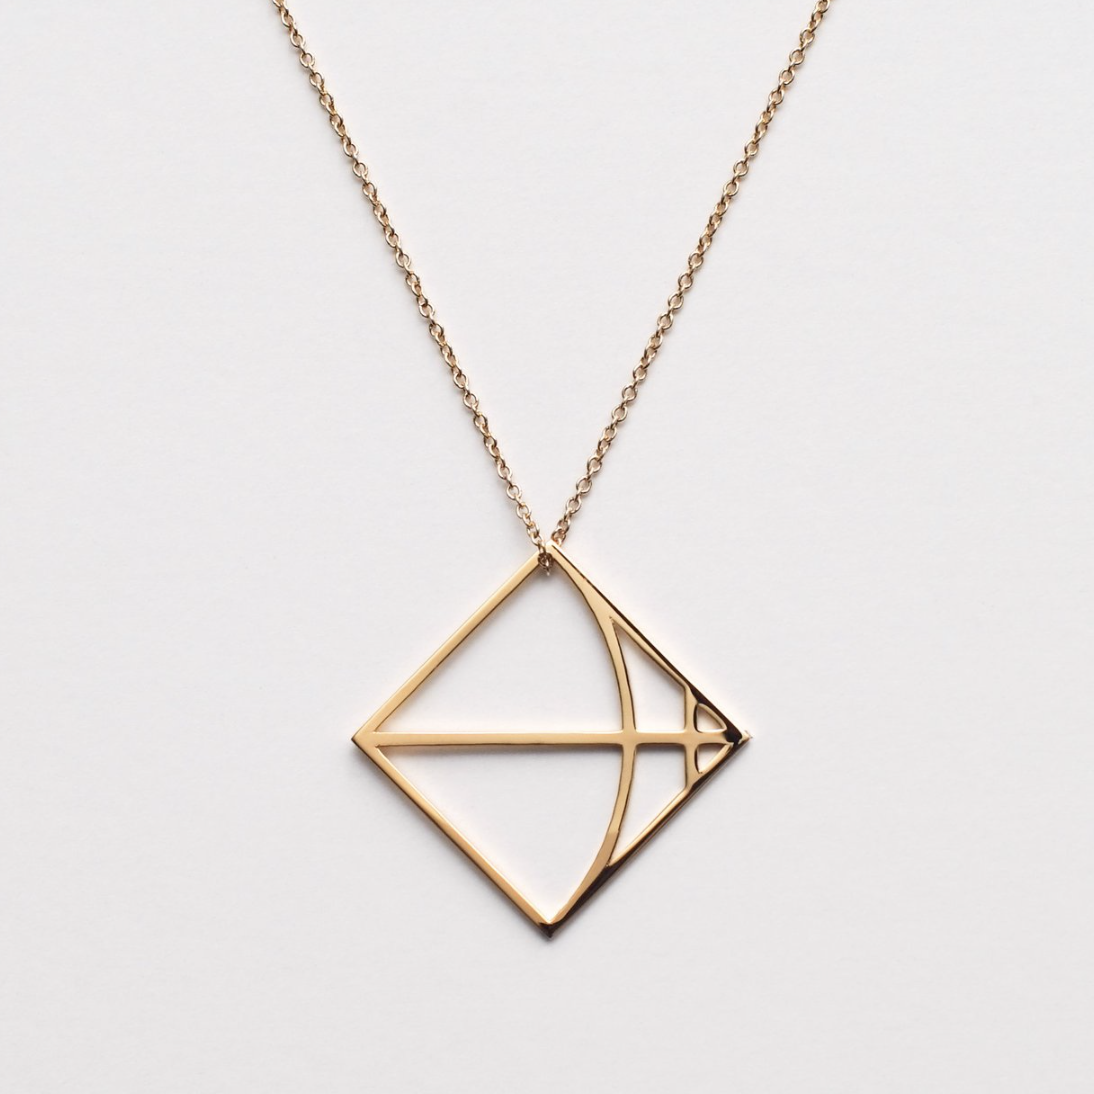 Castine - NY Jewlery brand crafted using simple and delicate geometric forms to create a modern interpretation of ancient symbols of the Zodiac. All pendants are created by a 3D printer.